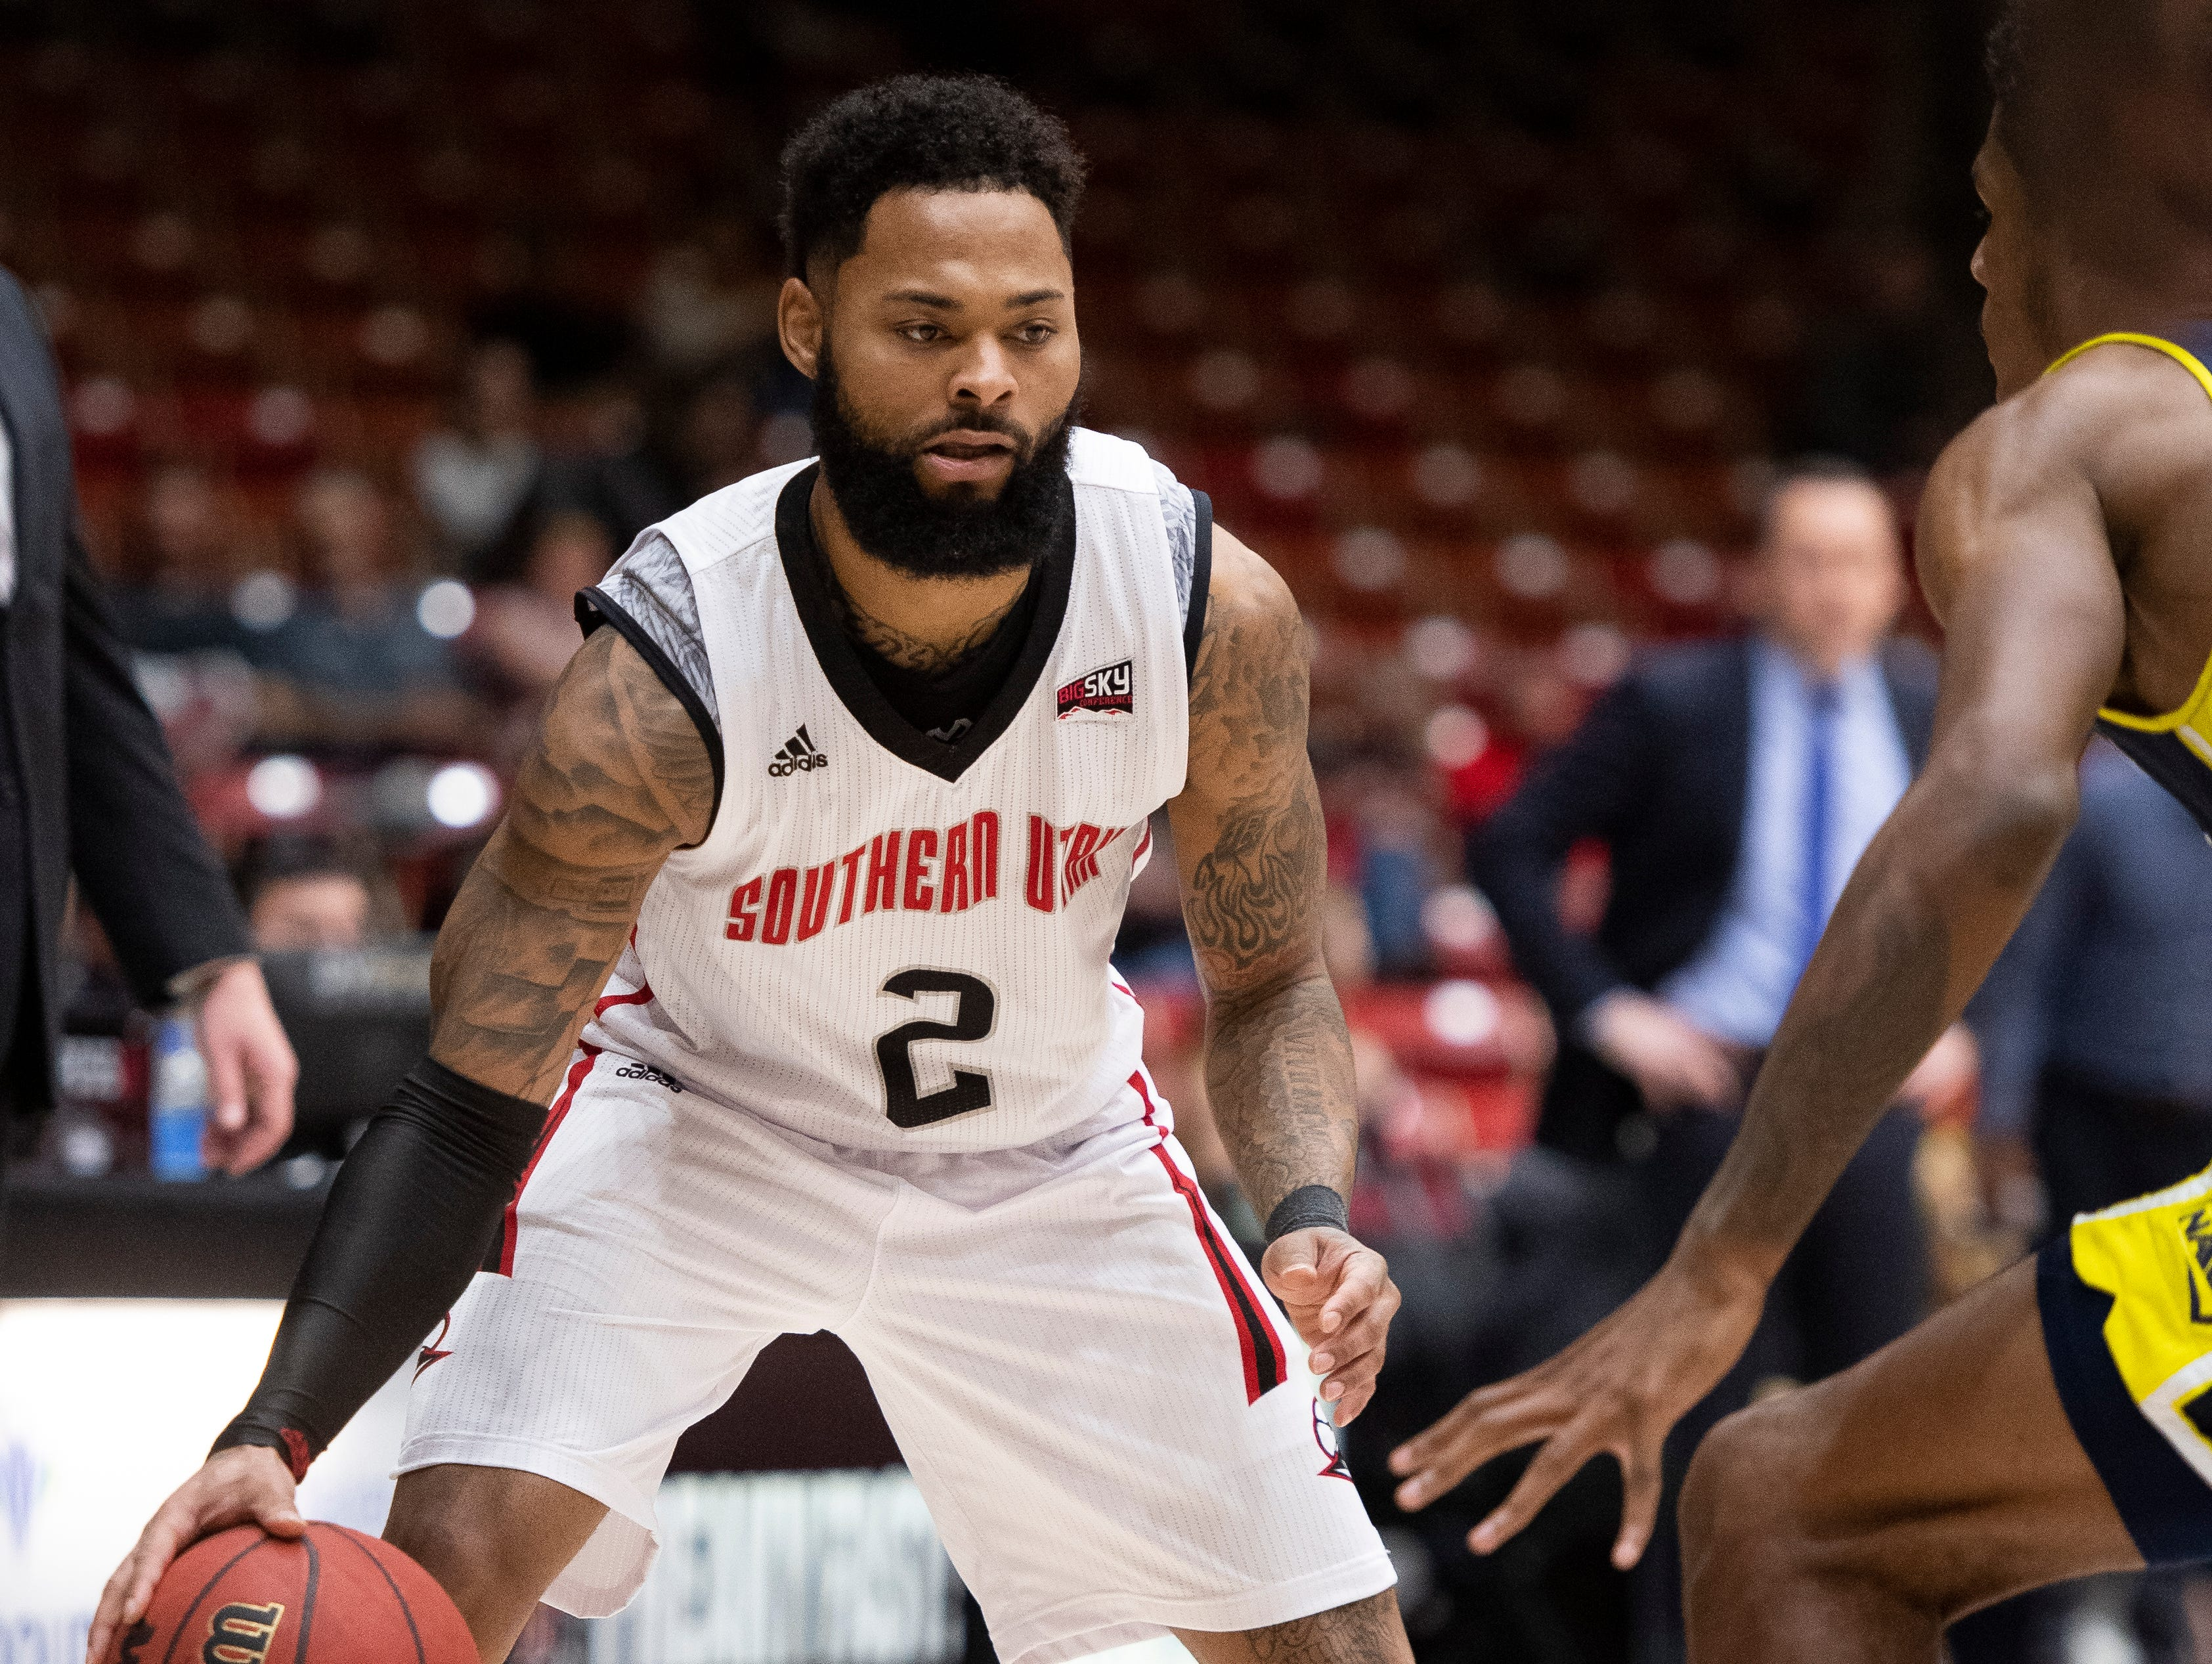 Southern Utah University senior Brandon Better (2) moves the ball against rival Northern Arizona at the America First Event Center Saturday, January 12, 2019. SUU won, 84-82.